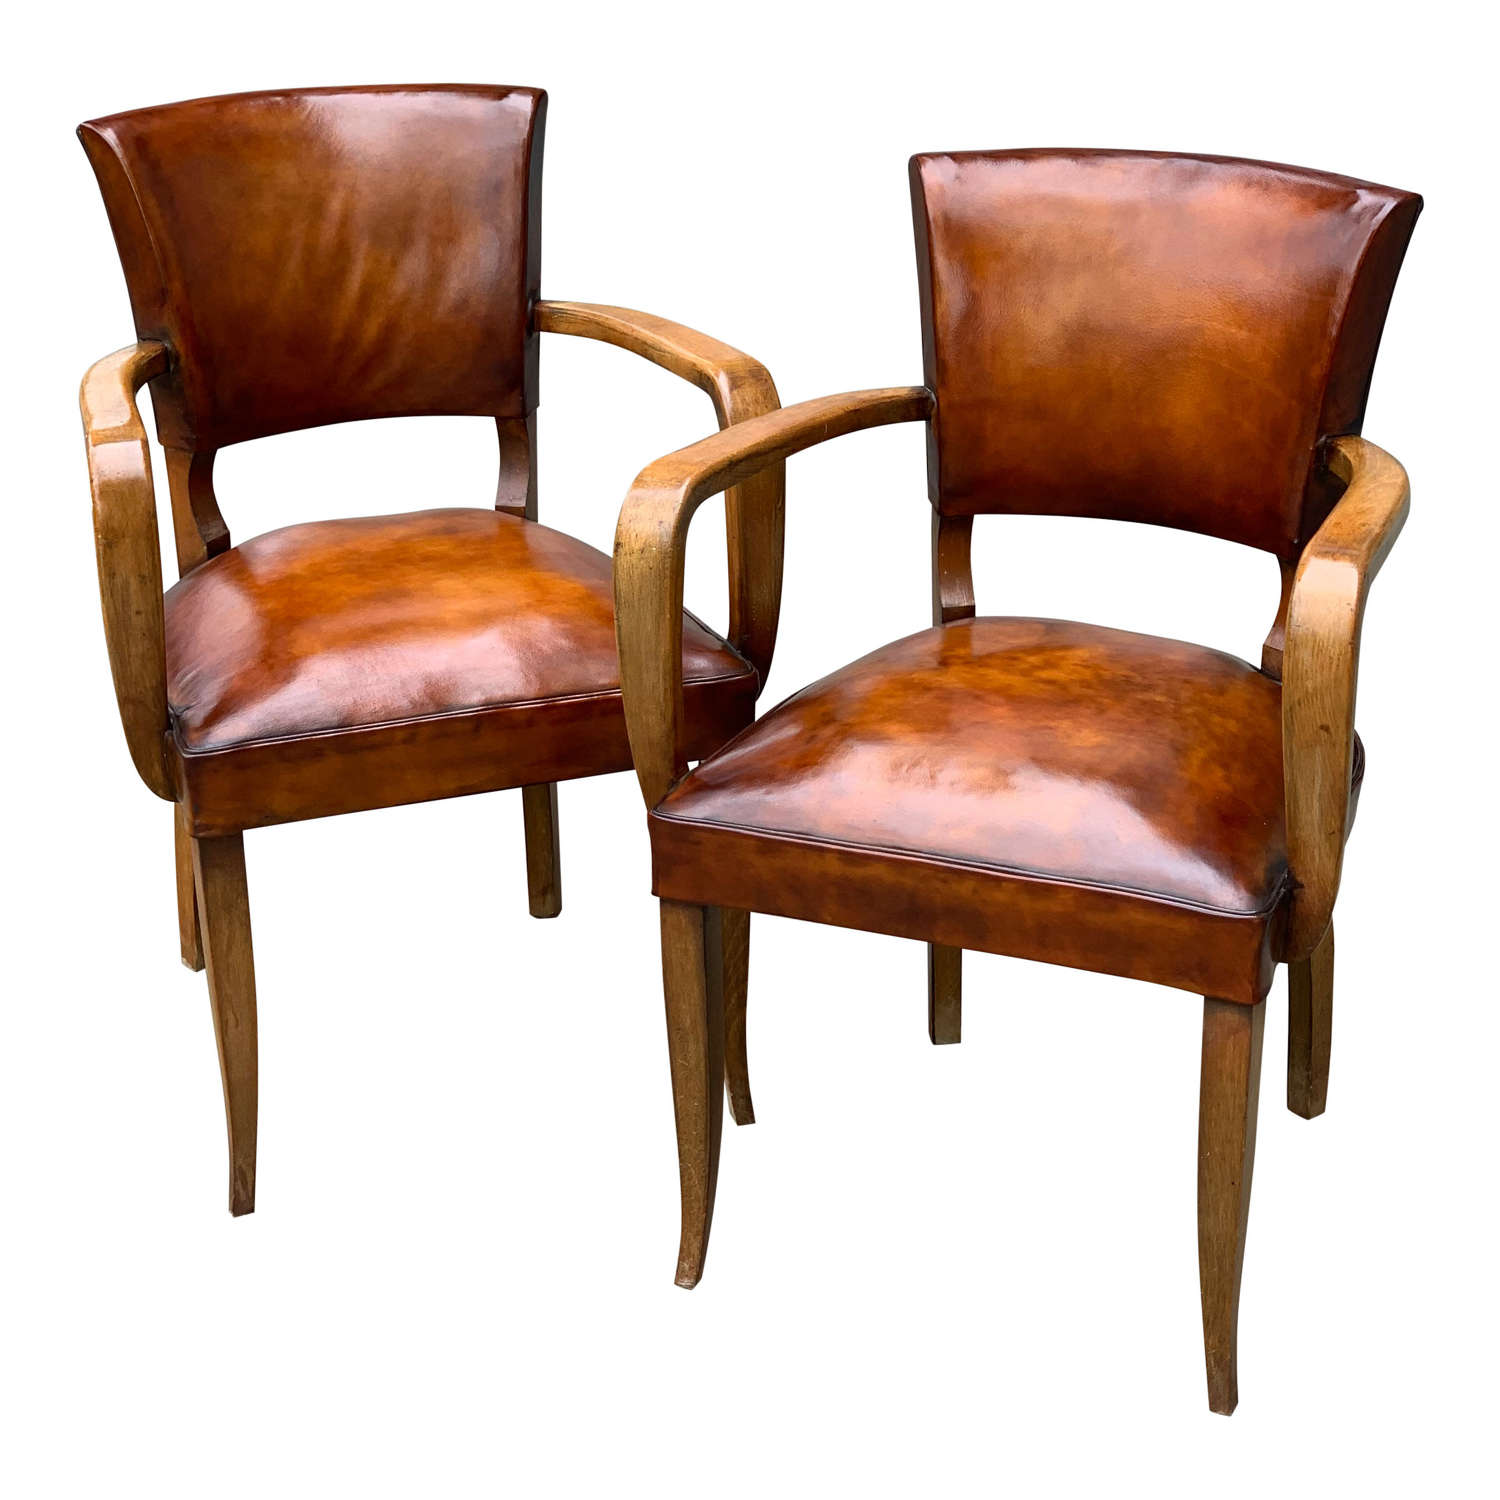 1940`S BRIDGE CHAIRS WITH REUPHOLSTERED LEATHER